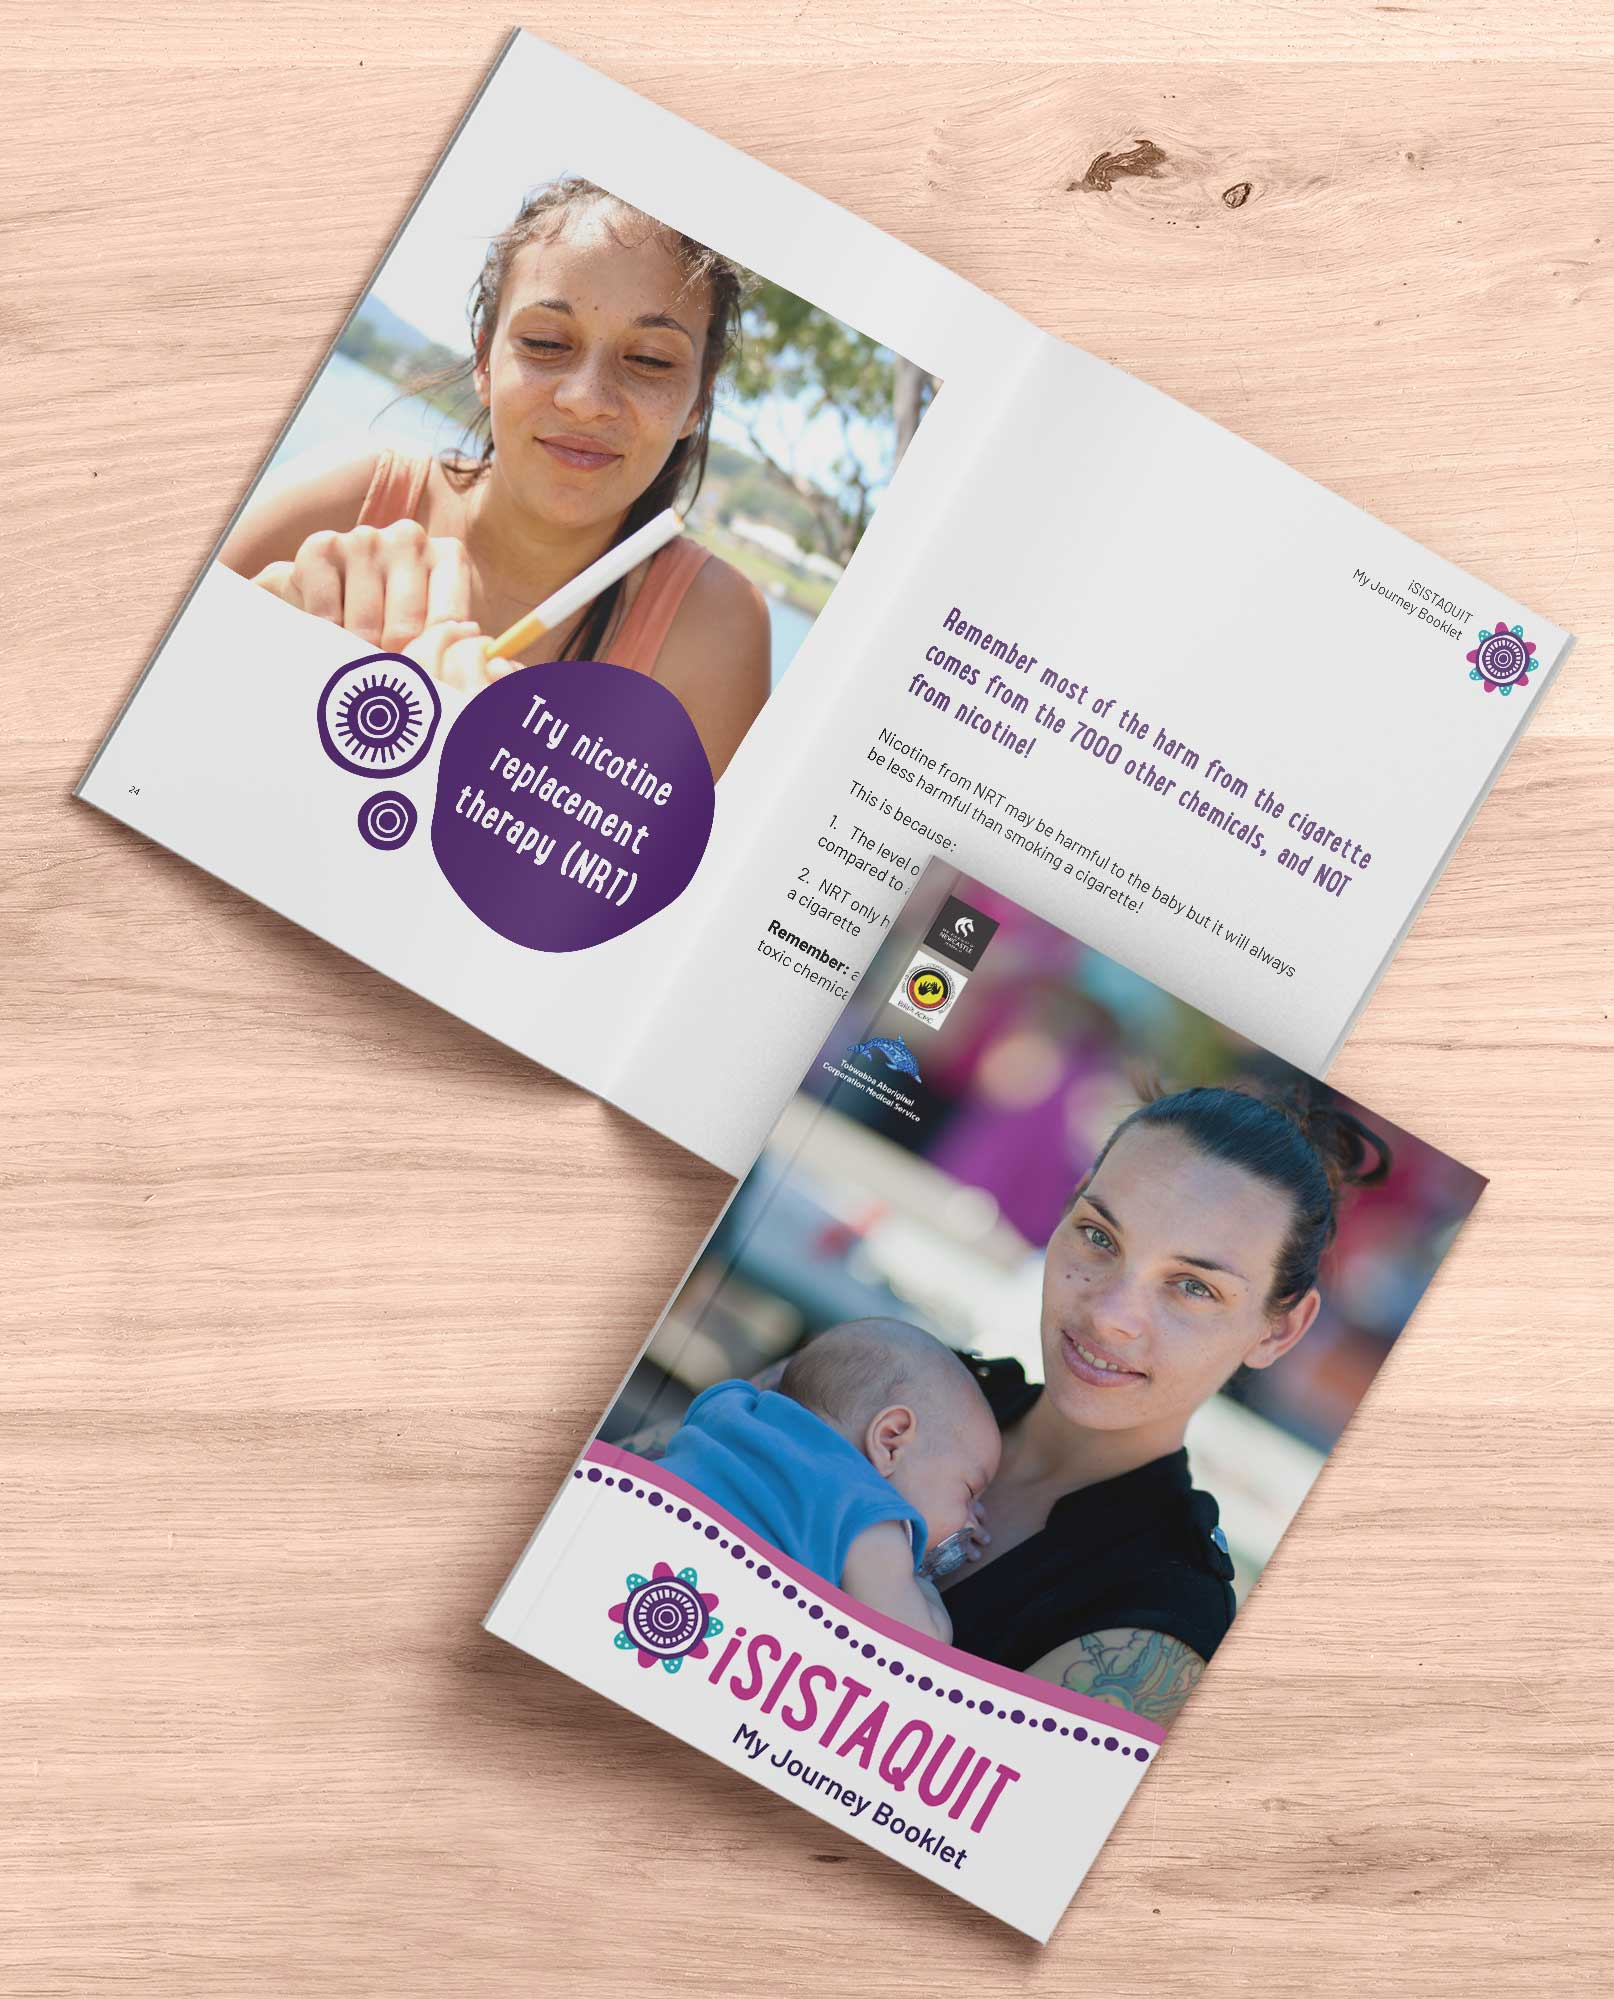 iSISTAQUIT My Journey booklet - Indigenous Educational Toolkit